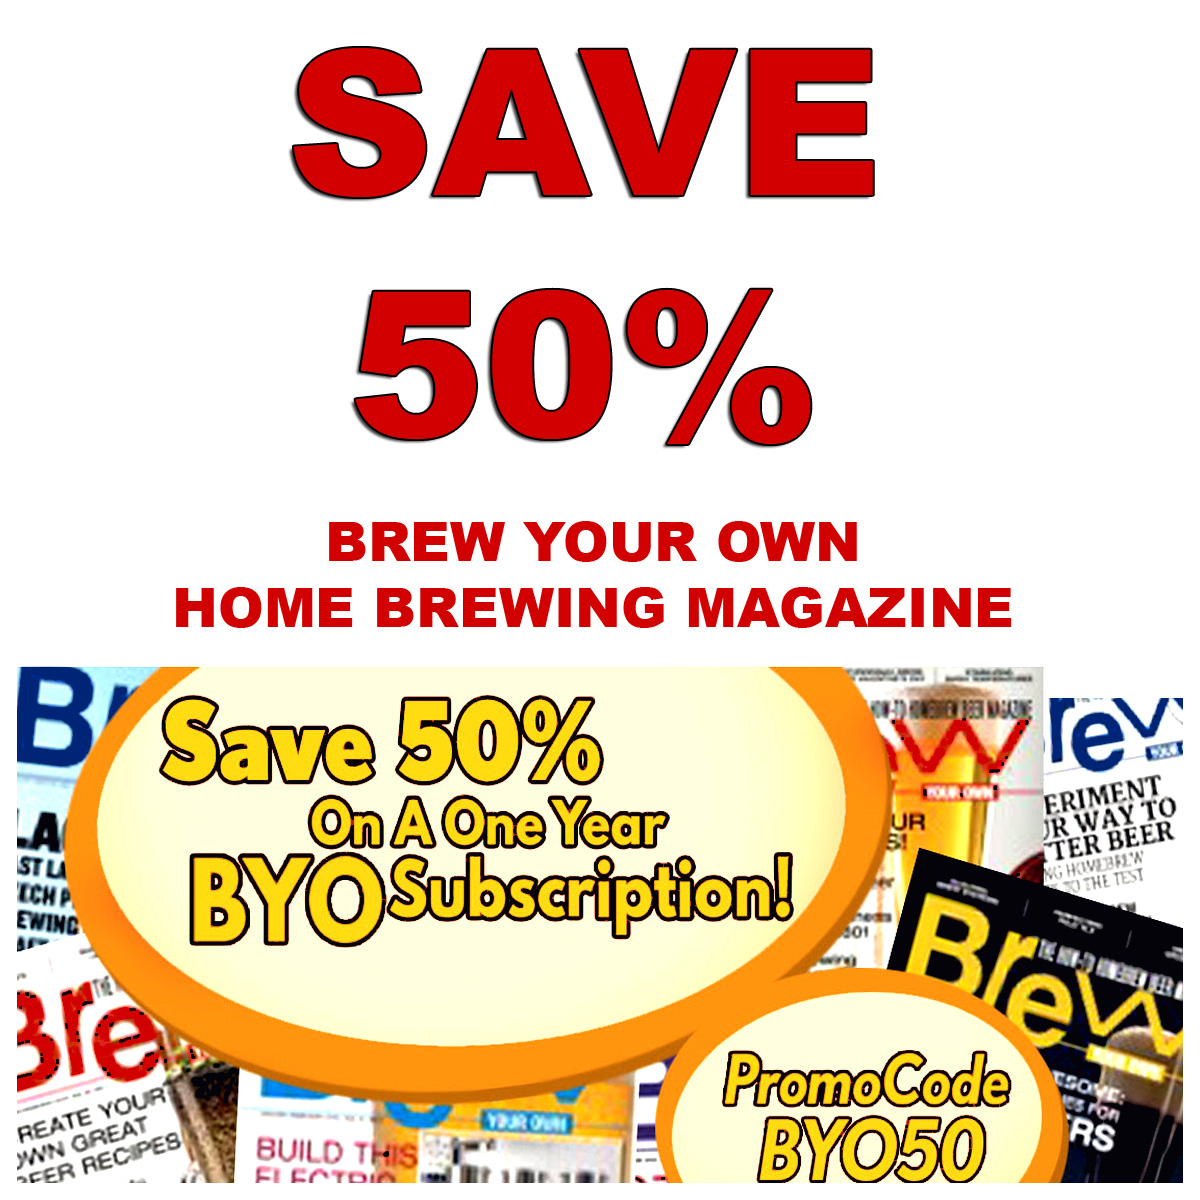 Discount mags coupon codes